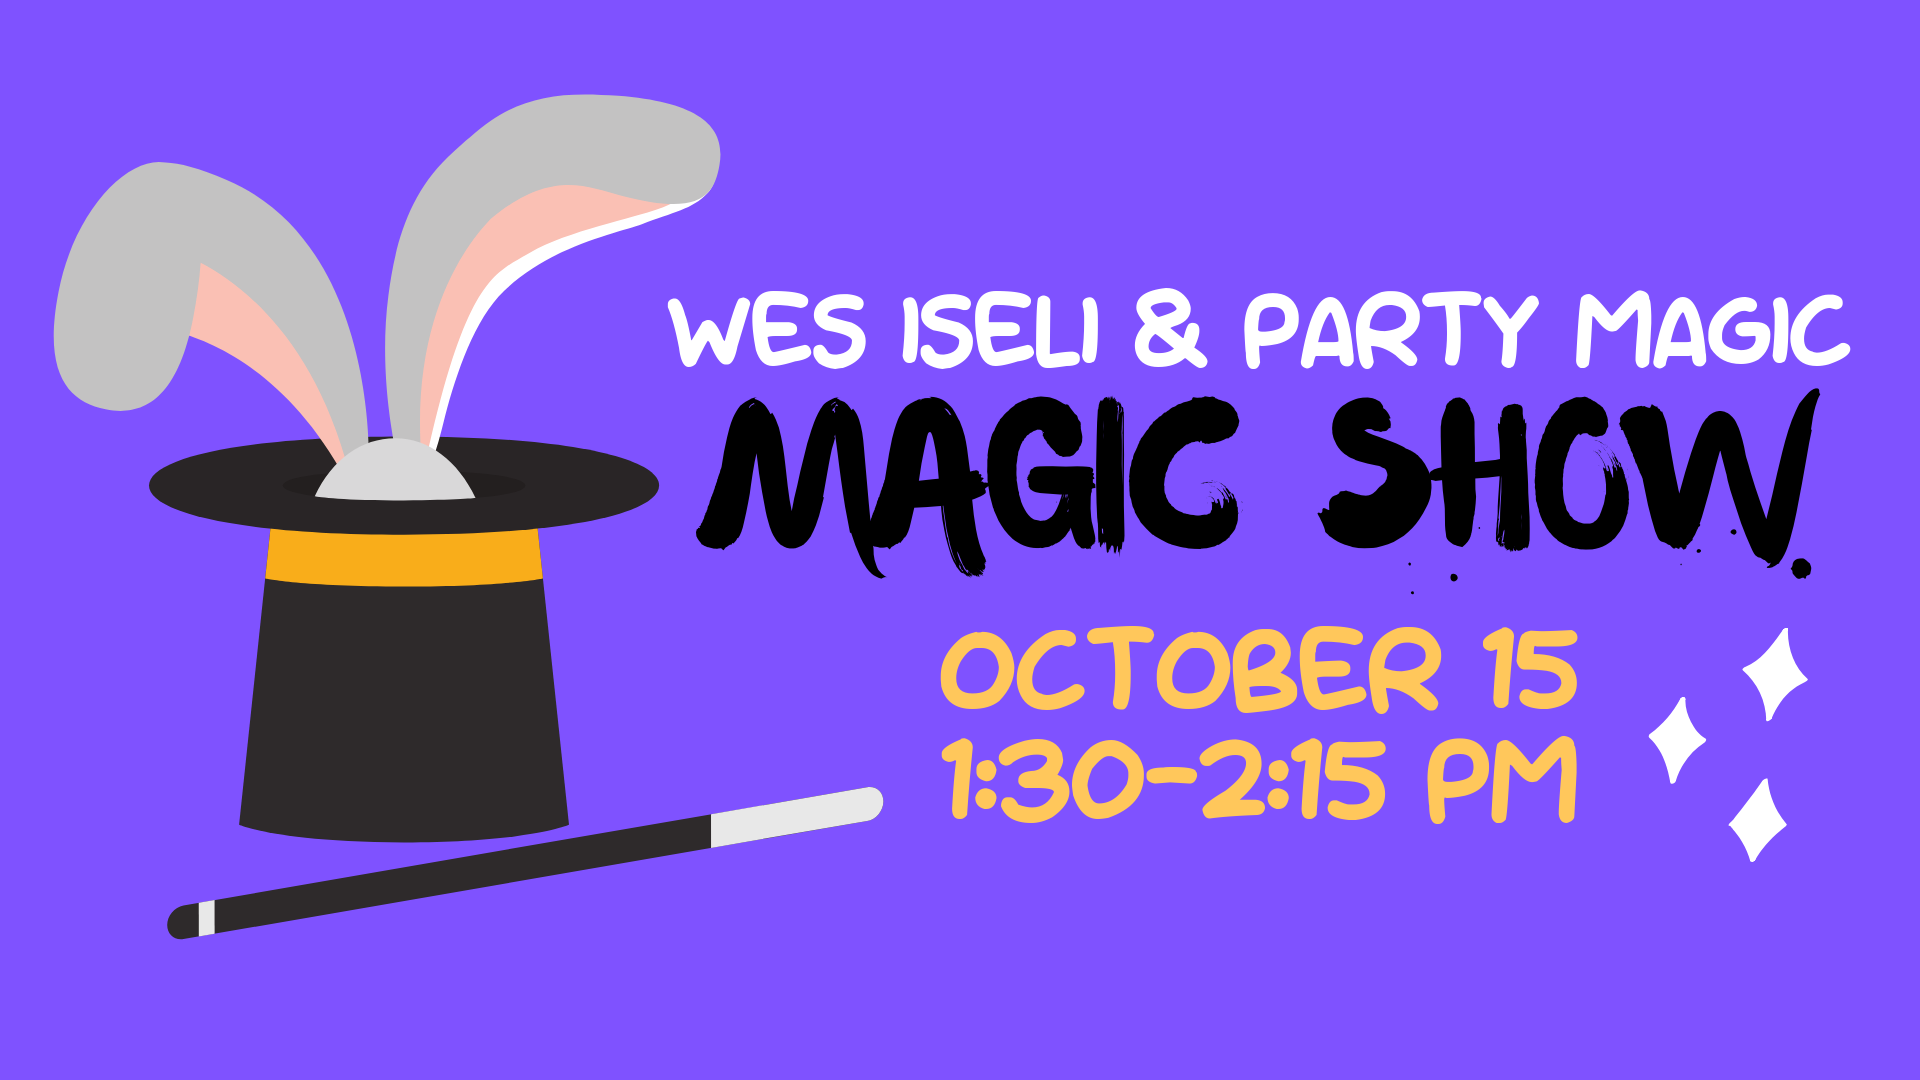 Magic Show: Wes Iseli and Party Magic @ Community Meeting Room